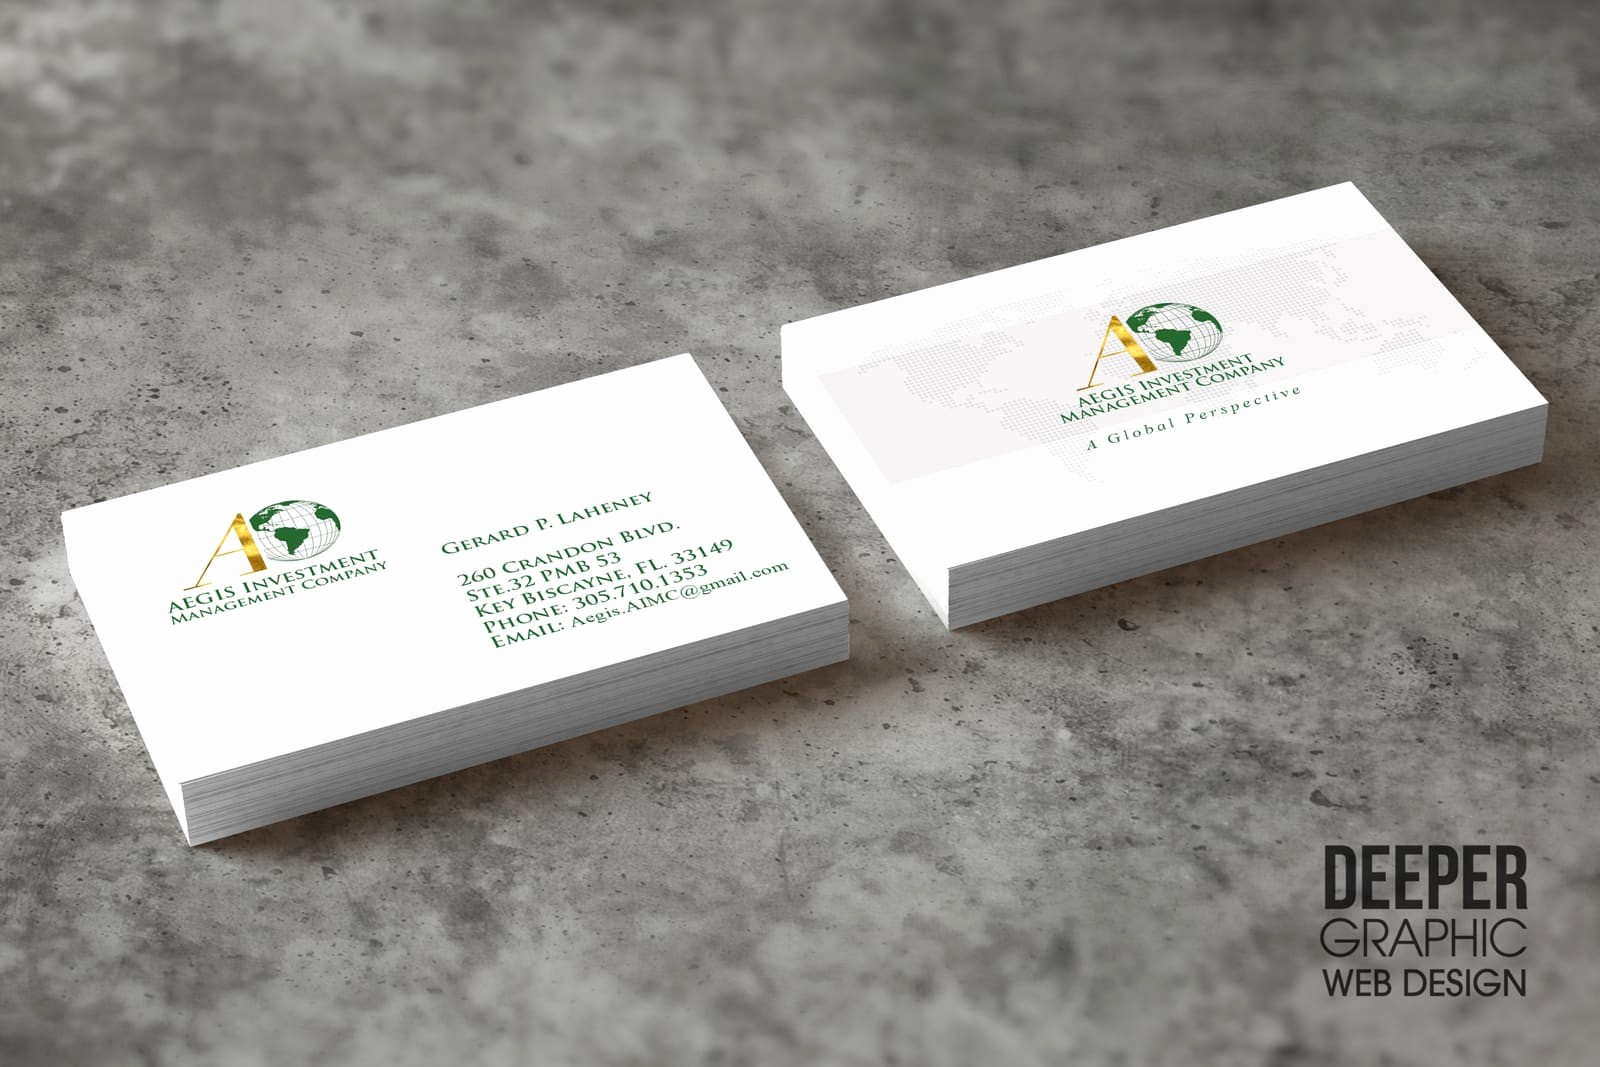 Business Card Template Word 2010 Fresh 4 Sided Business Cards Choice Image Business Card Template